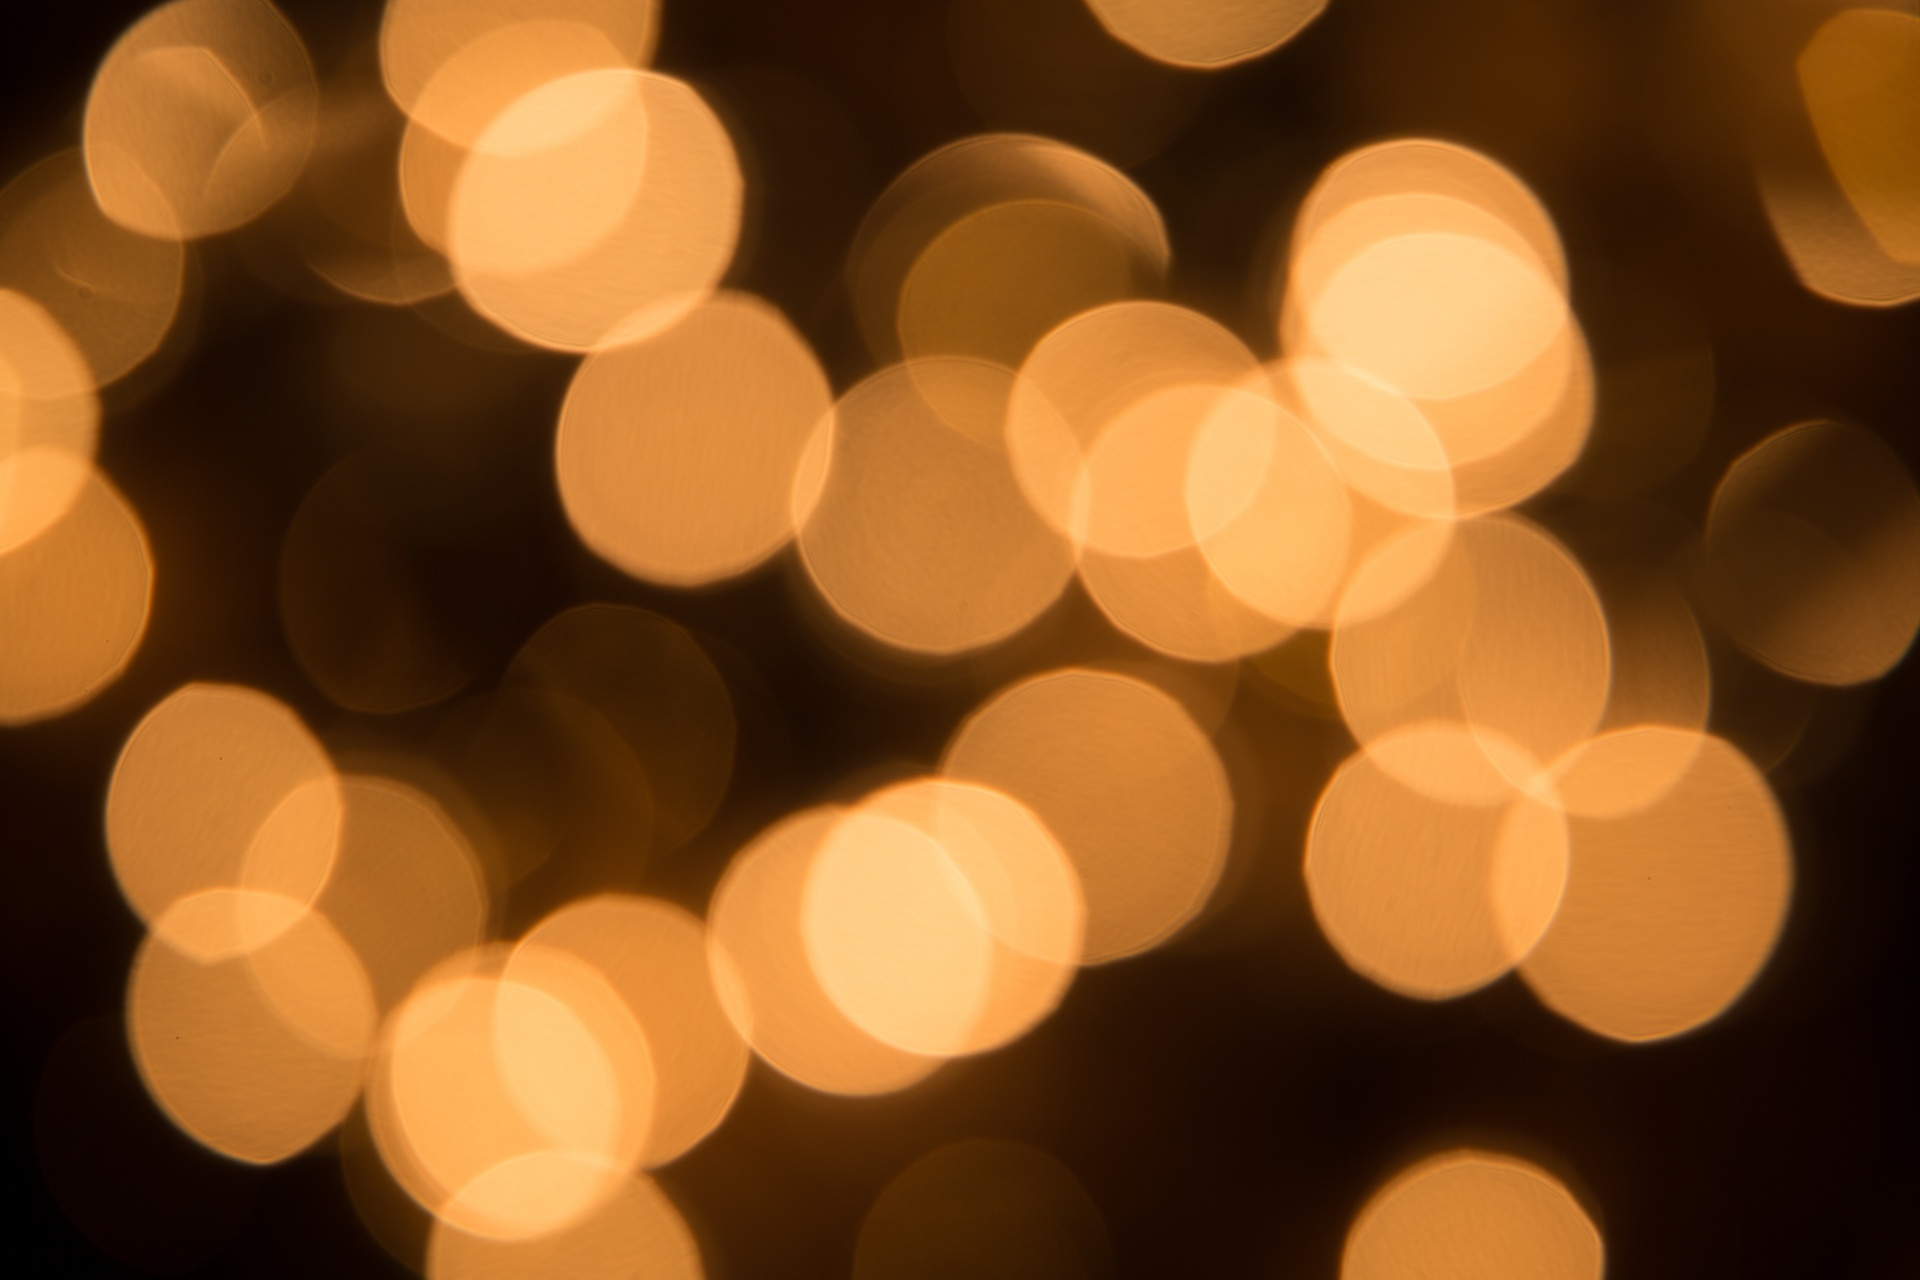 Bokeh Background Free Stock Photo - Public Domain Pictures